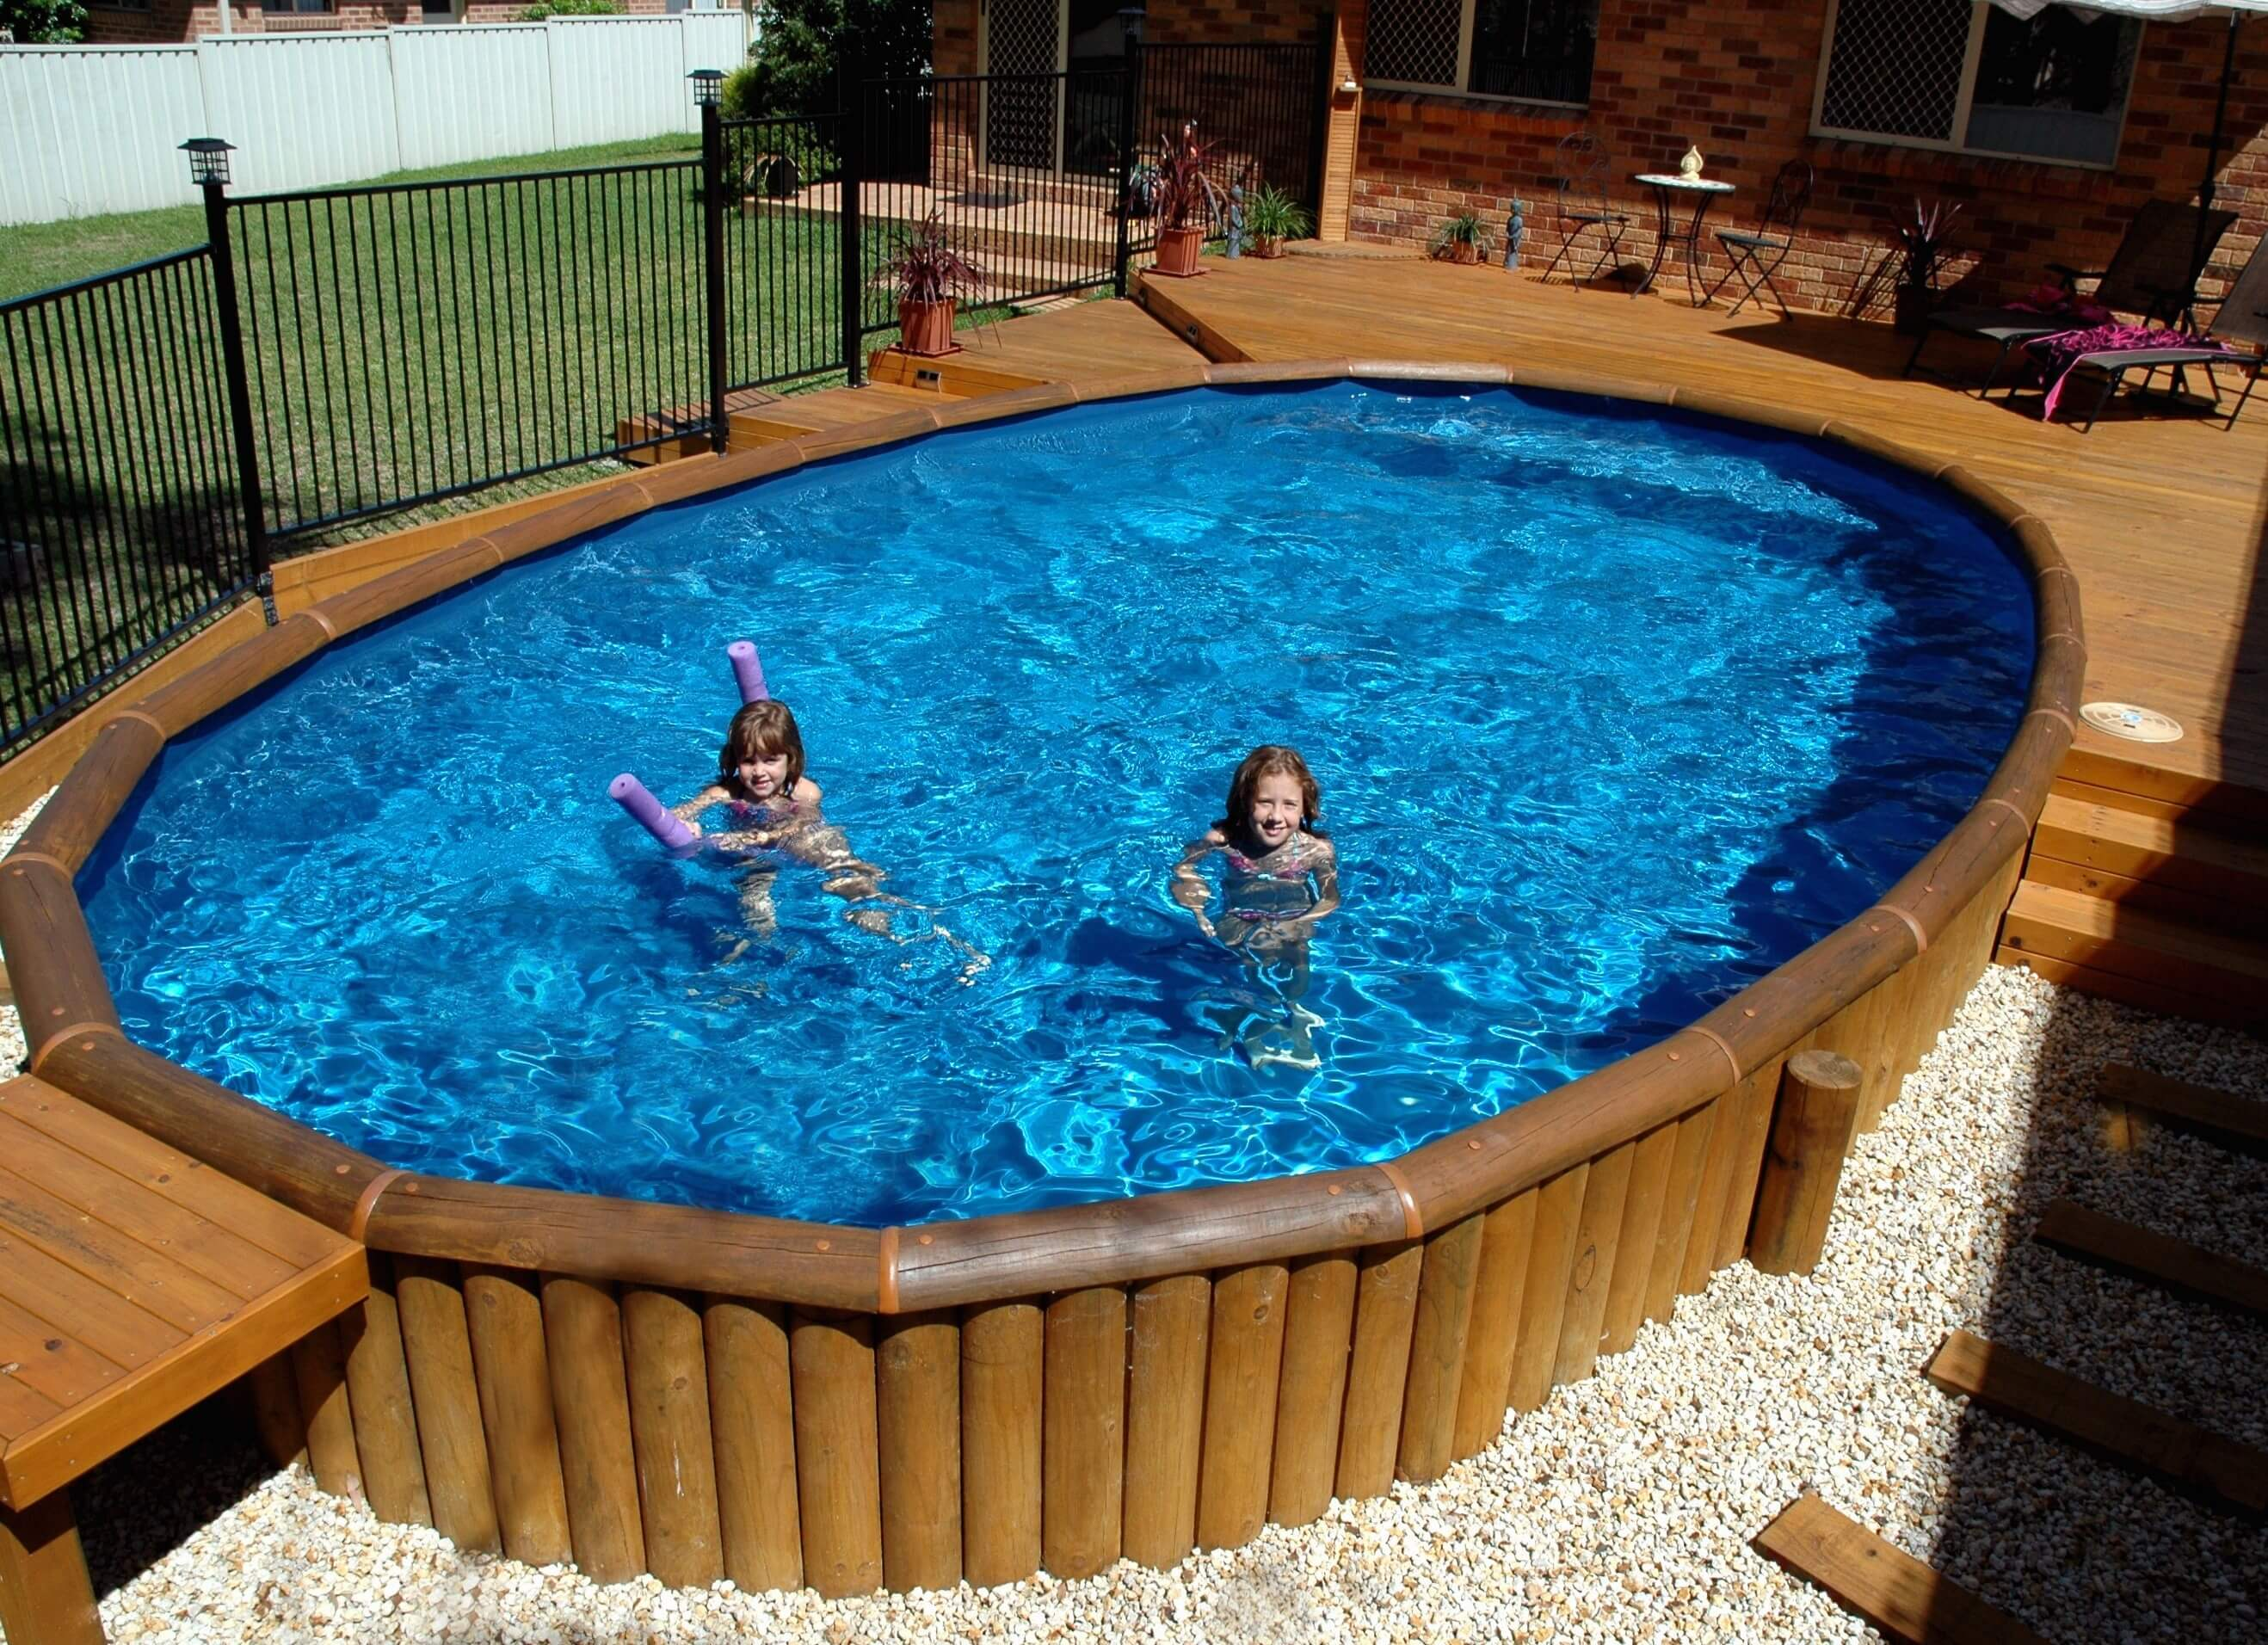 Relax and enjoy your new pool